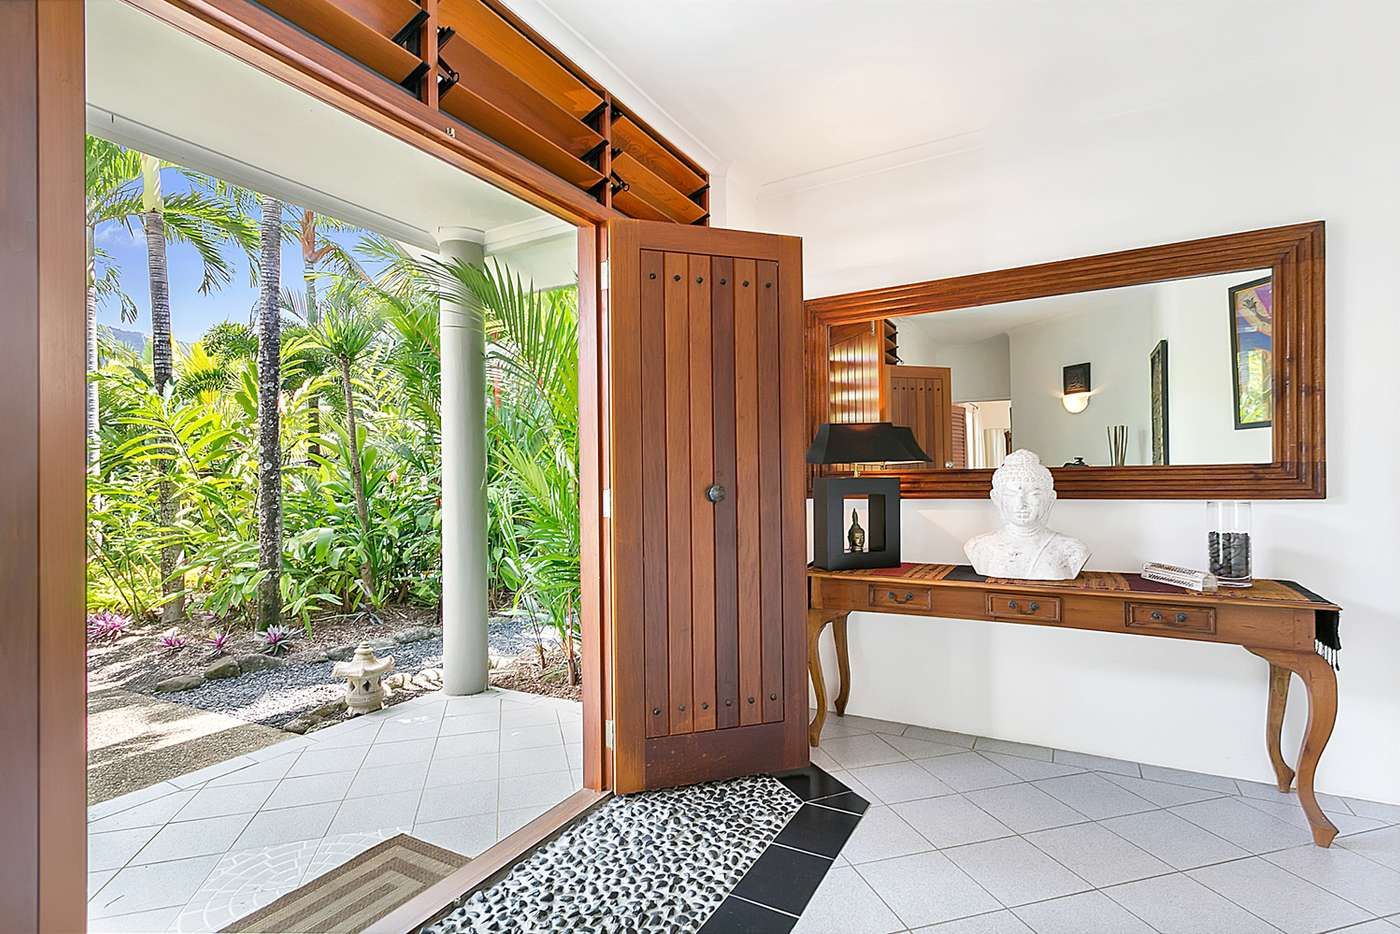 Seventh view of Homely house listing, 40 Yule Avenue, Clifton Beach QLD 4879